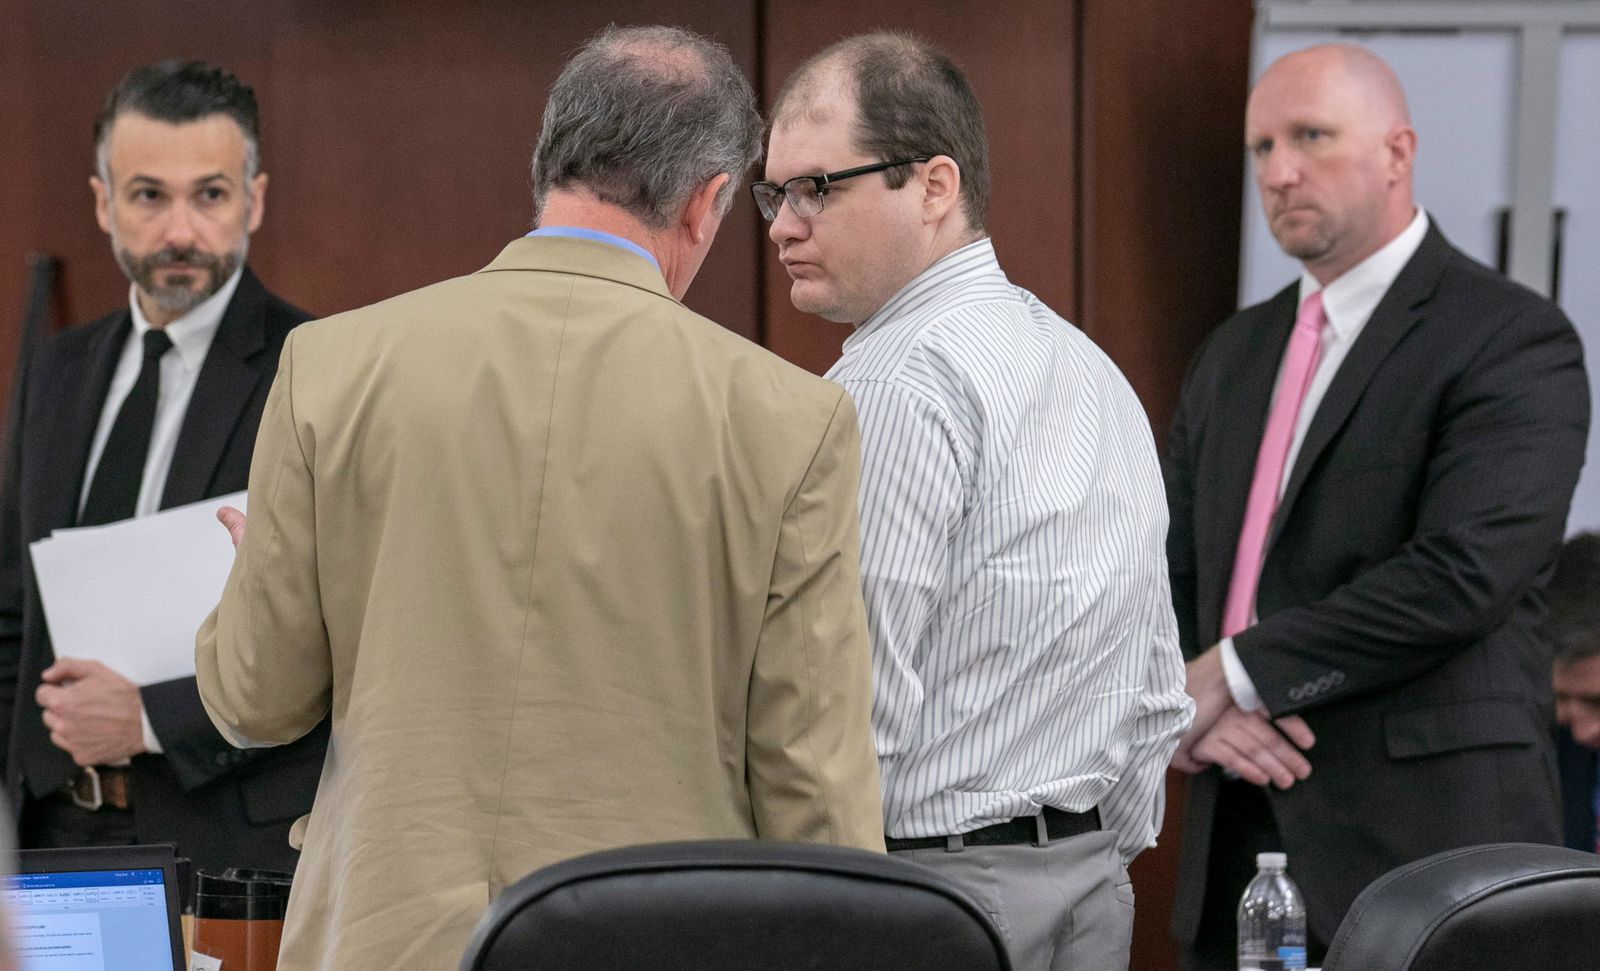 Defense attorney Boyd Young talks with Tim Jones, center, during the sentencing phase of his trial in Lexington, S.C. Timothy Jones, Jr. was found guilty of killing his 5 young children in 2014.  (Tracy Glantz/The State via AP, Pool)